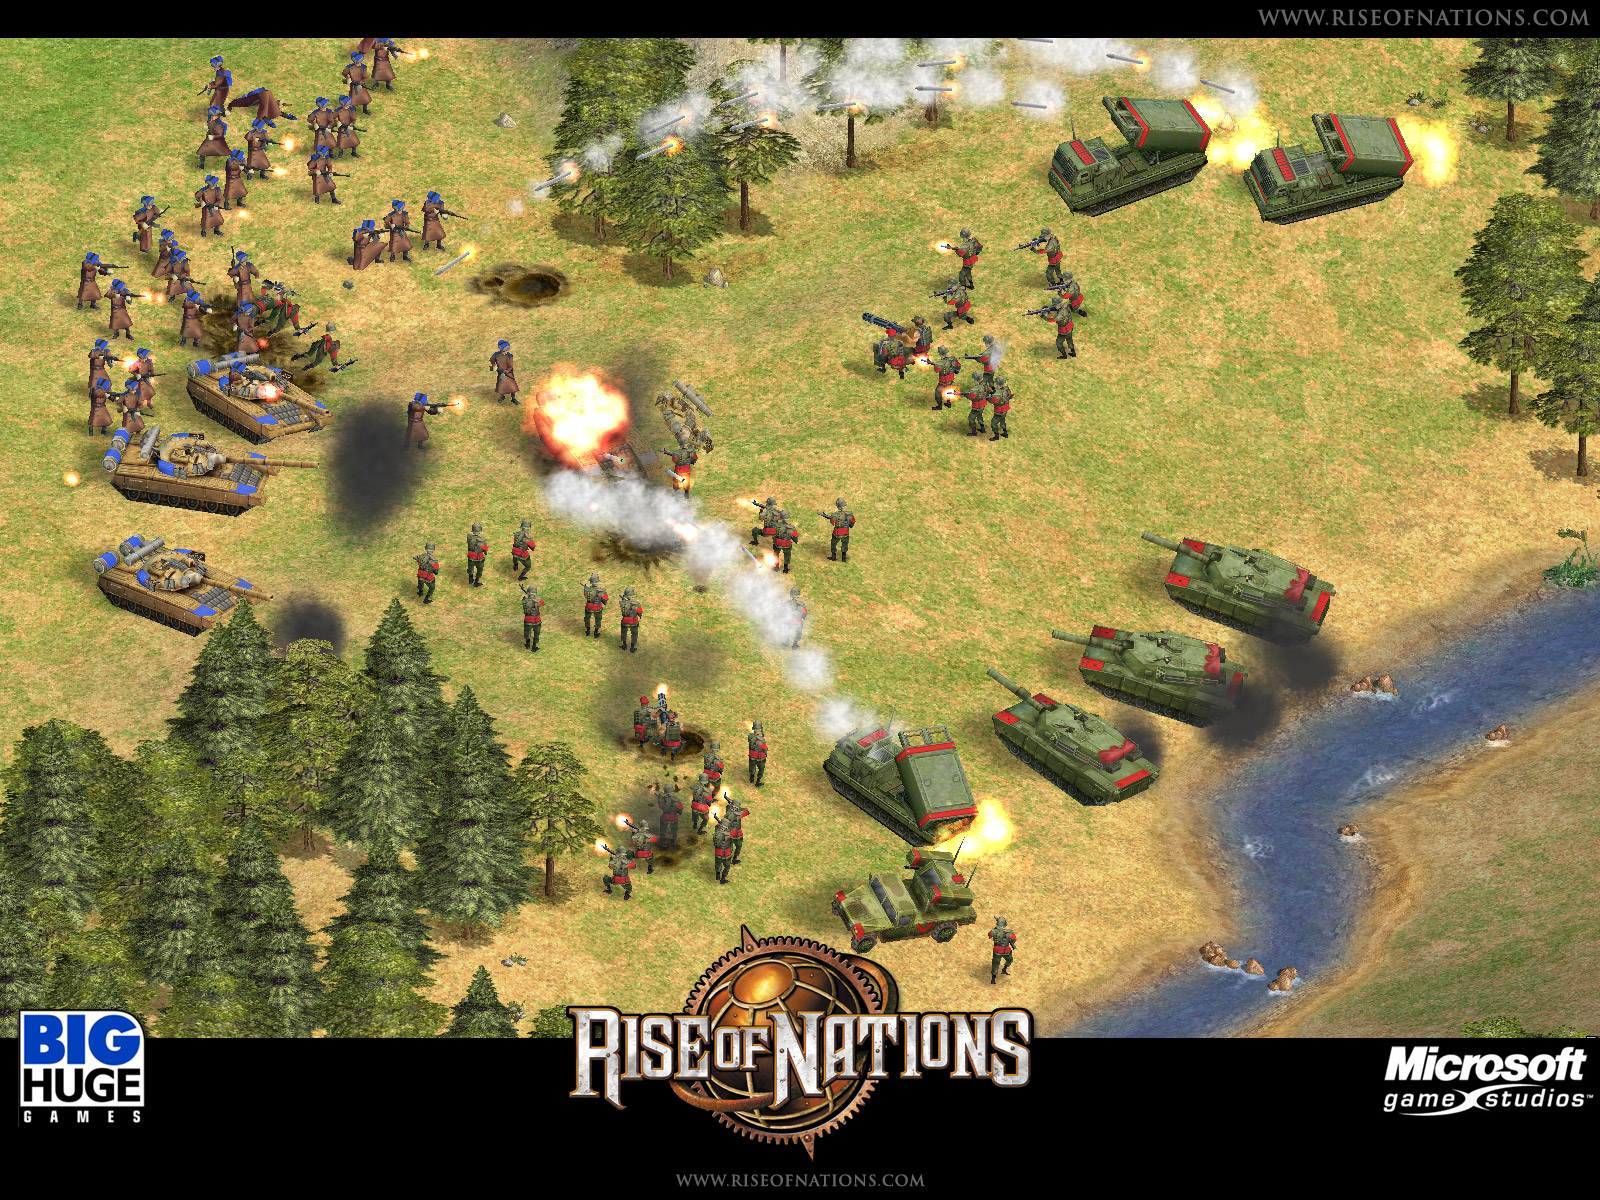 Download free games for wave 525. download rise of nations crack file. RSS